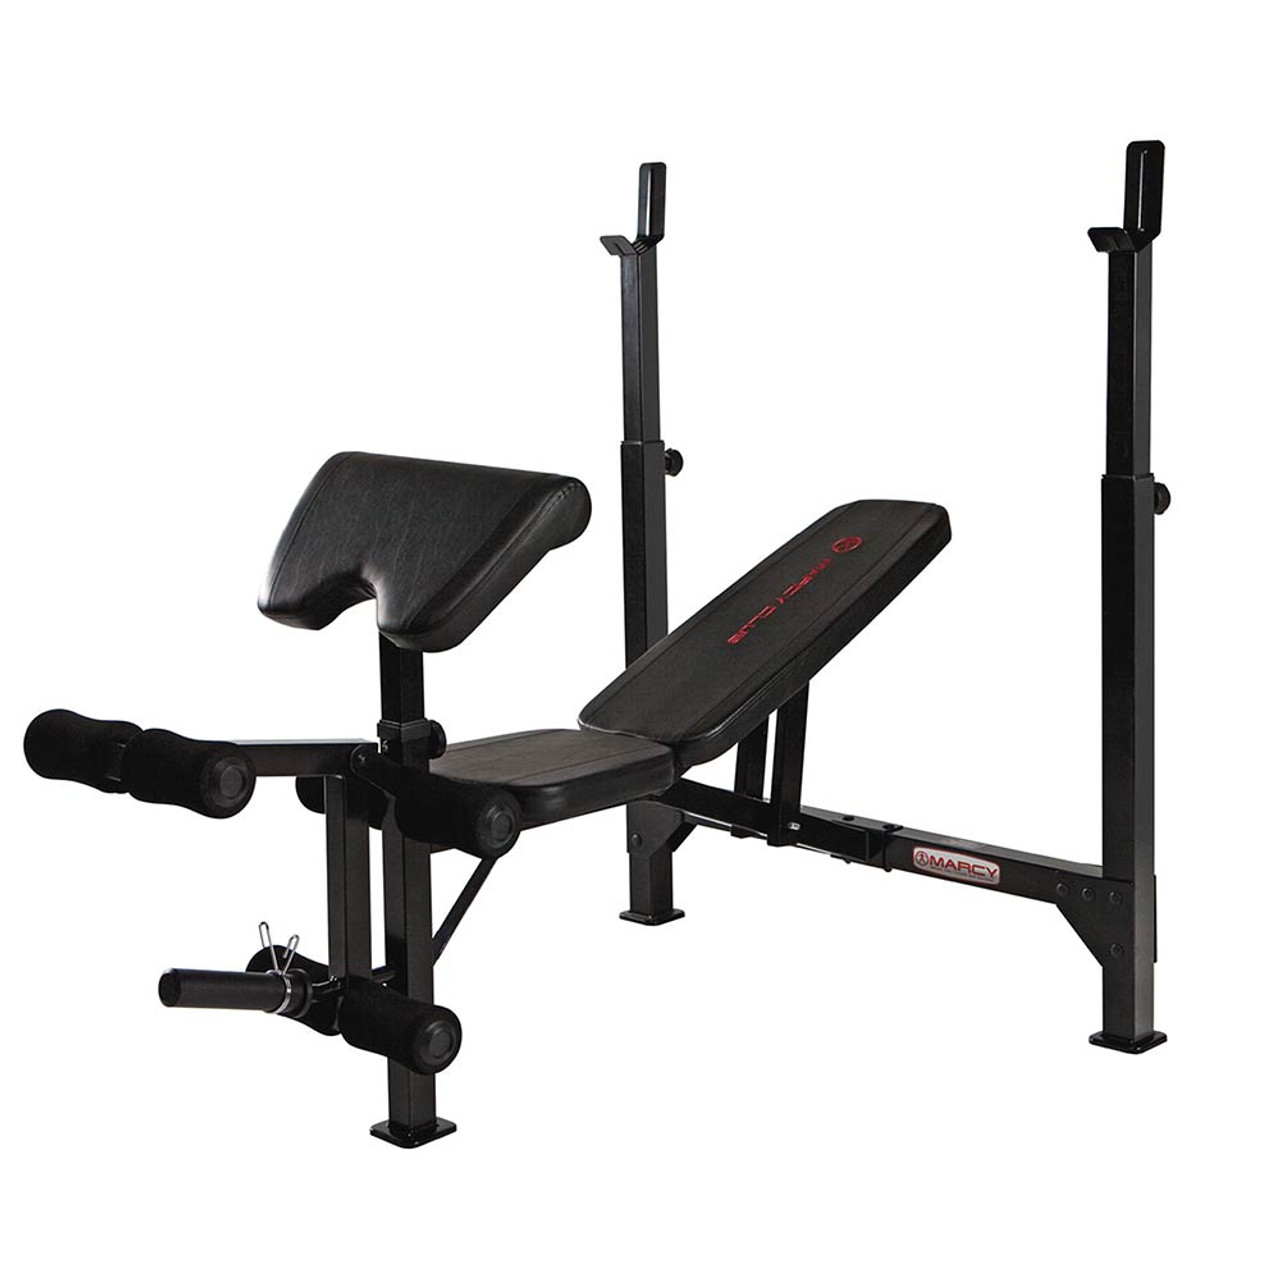 Marcy club olympic weight bench mkb 733 quality strength products Weight bench and weights